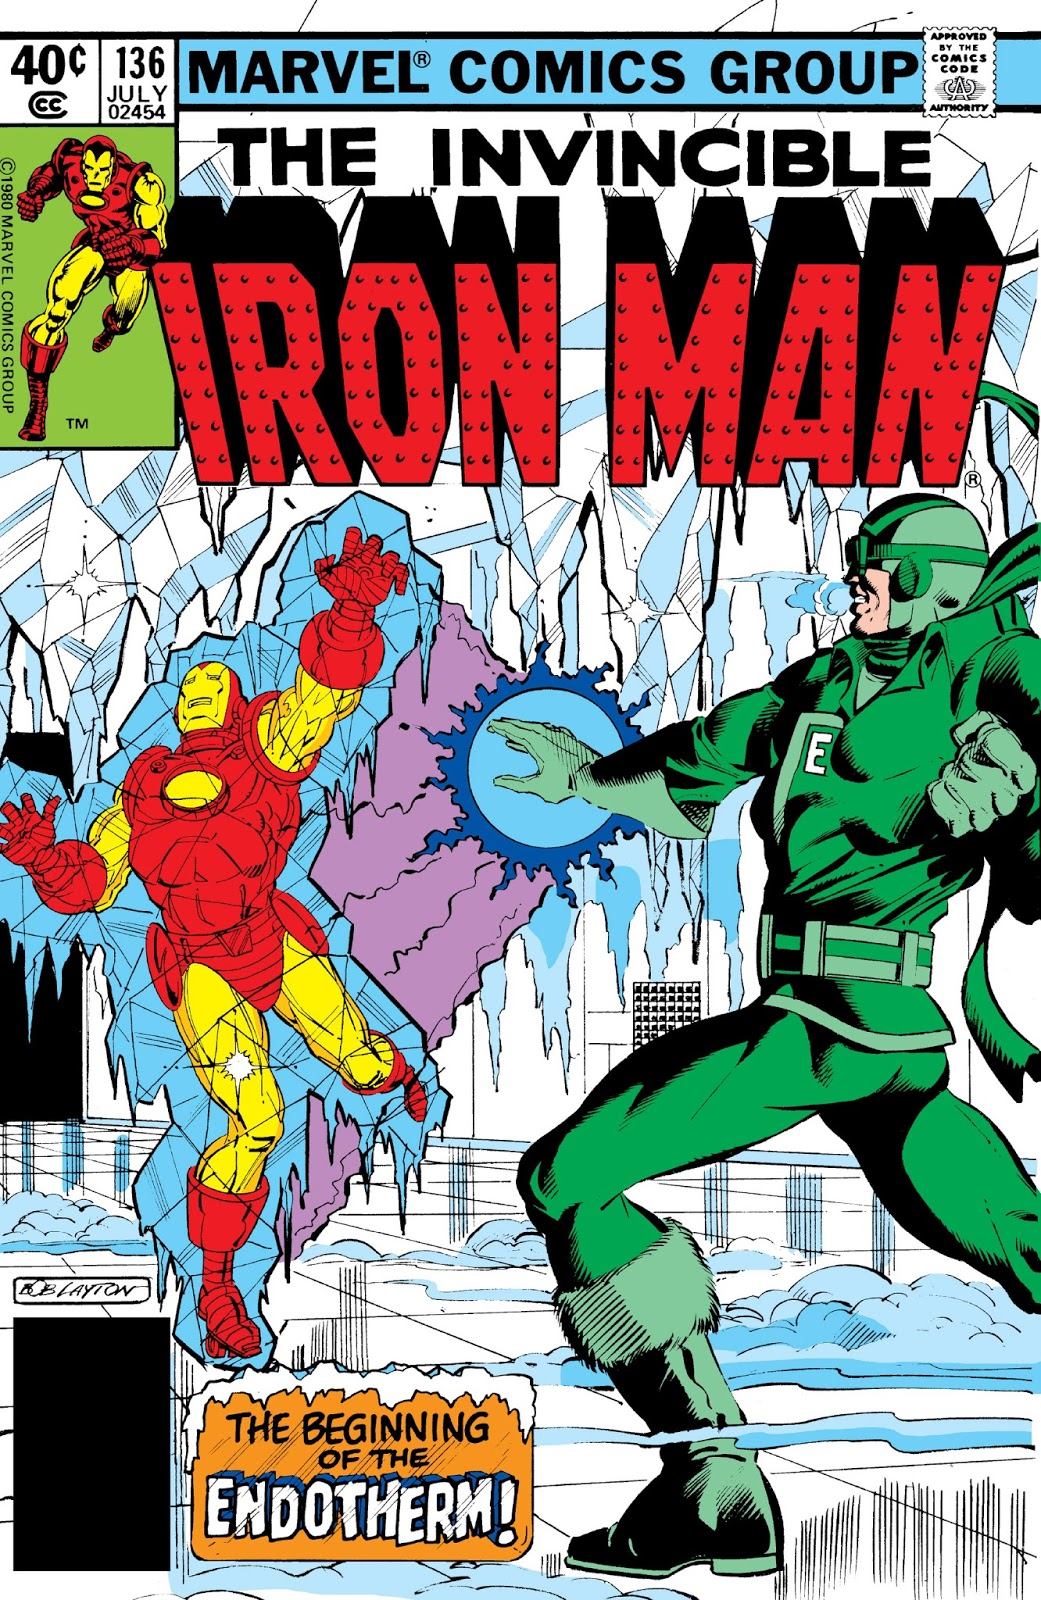 Marvel Comics of the 1980s: 1980 - Anatomy of a Cover - Iron Man ...